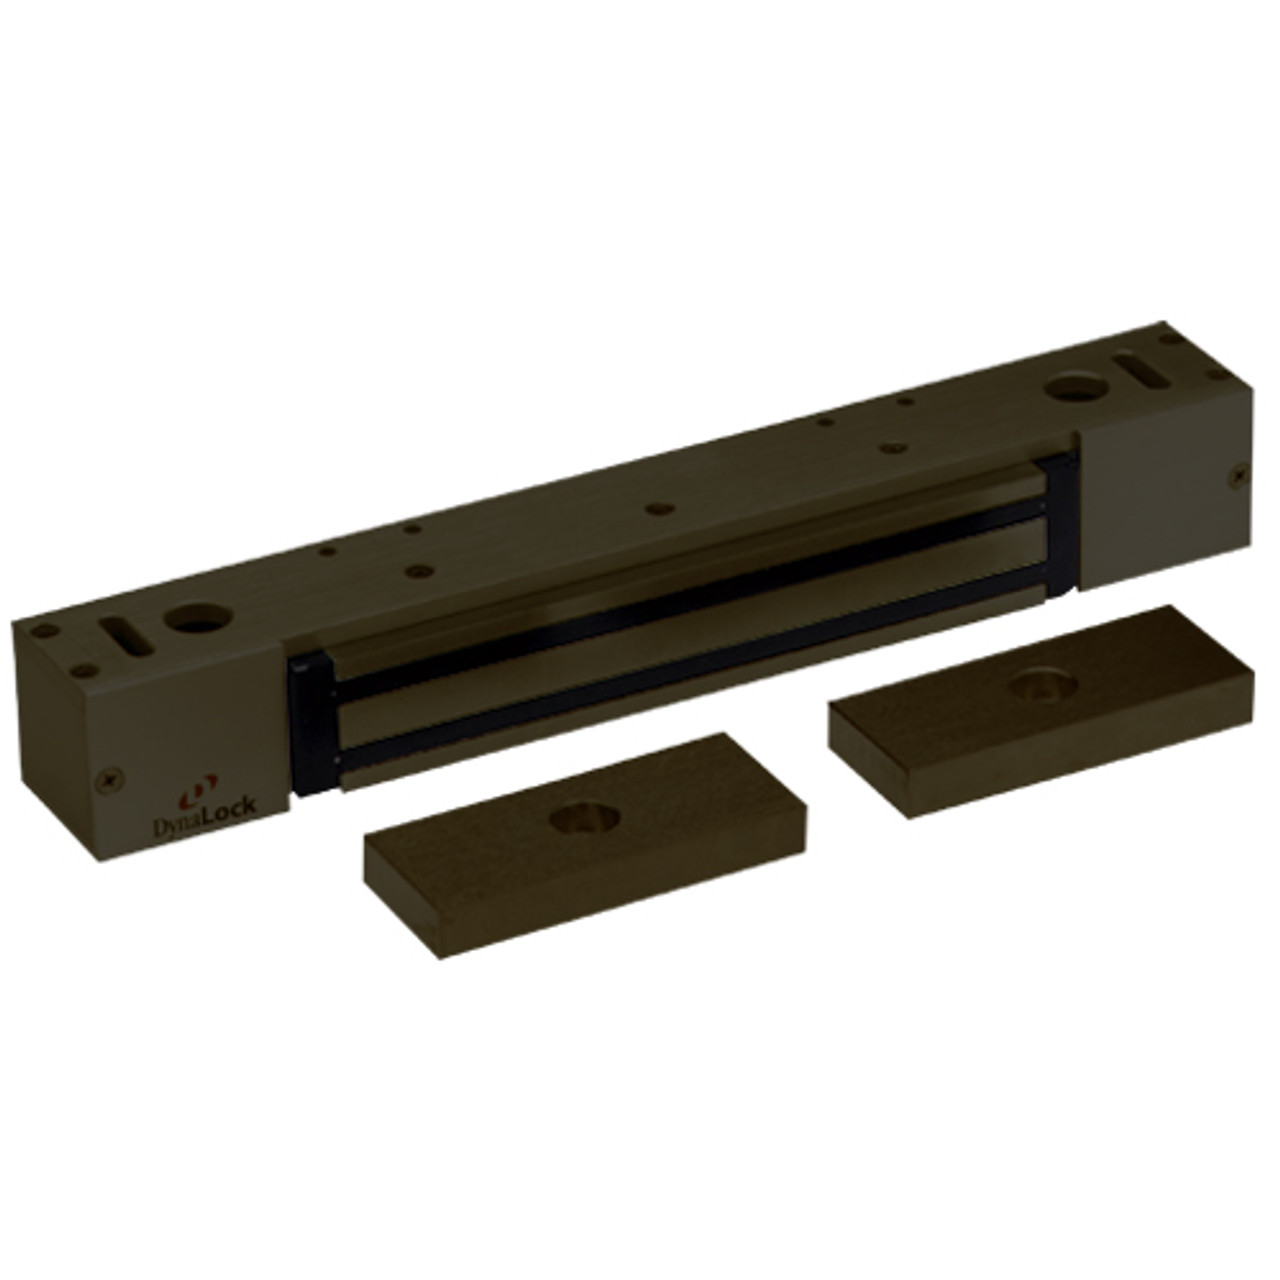 2268-15-US10B DynaLock 2268 Series Single Classic Low Profile Electromagnetic Lock for Pair Outswing Door in Oil Rubbed Bronze